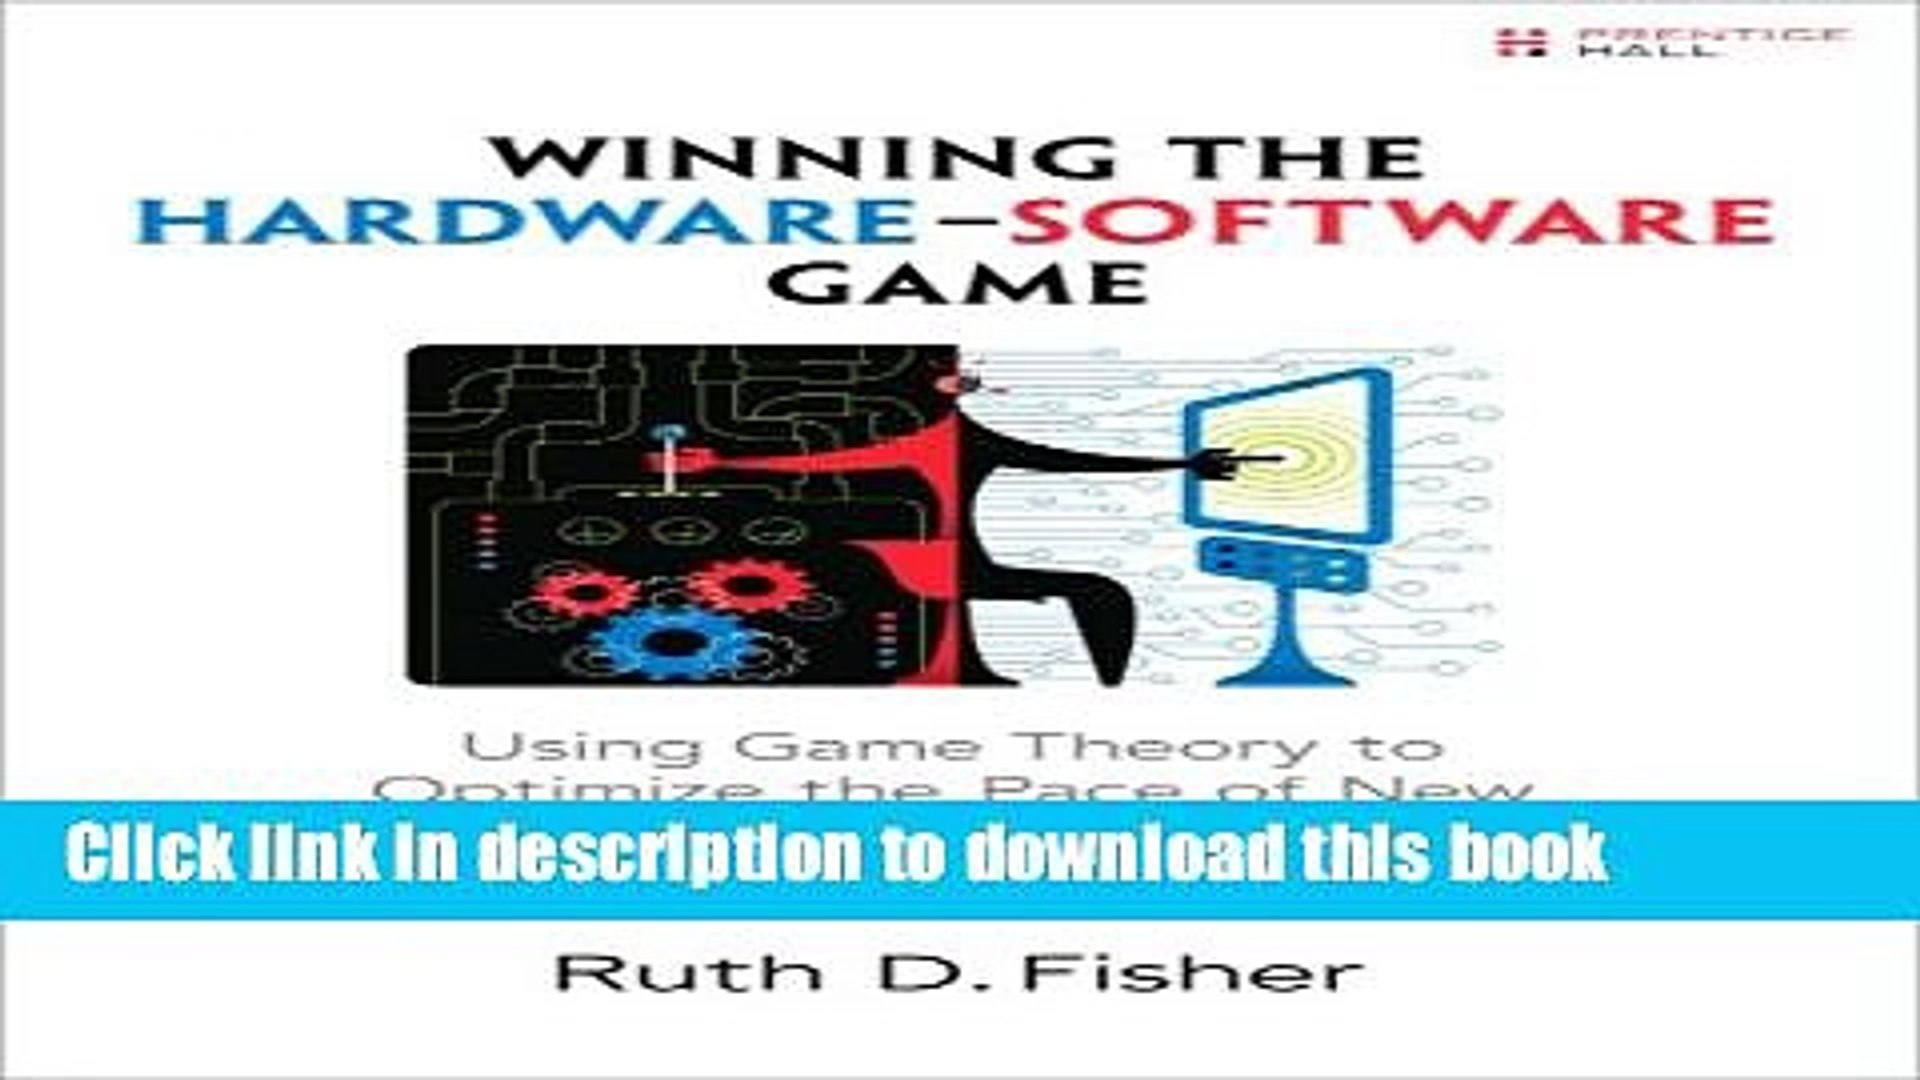 Download Winning the Hardware-Software Game: Using Game Theory to Optimize the Pace of New